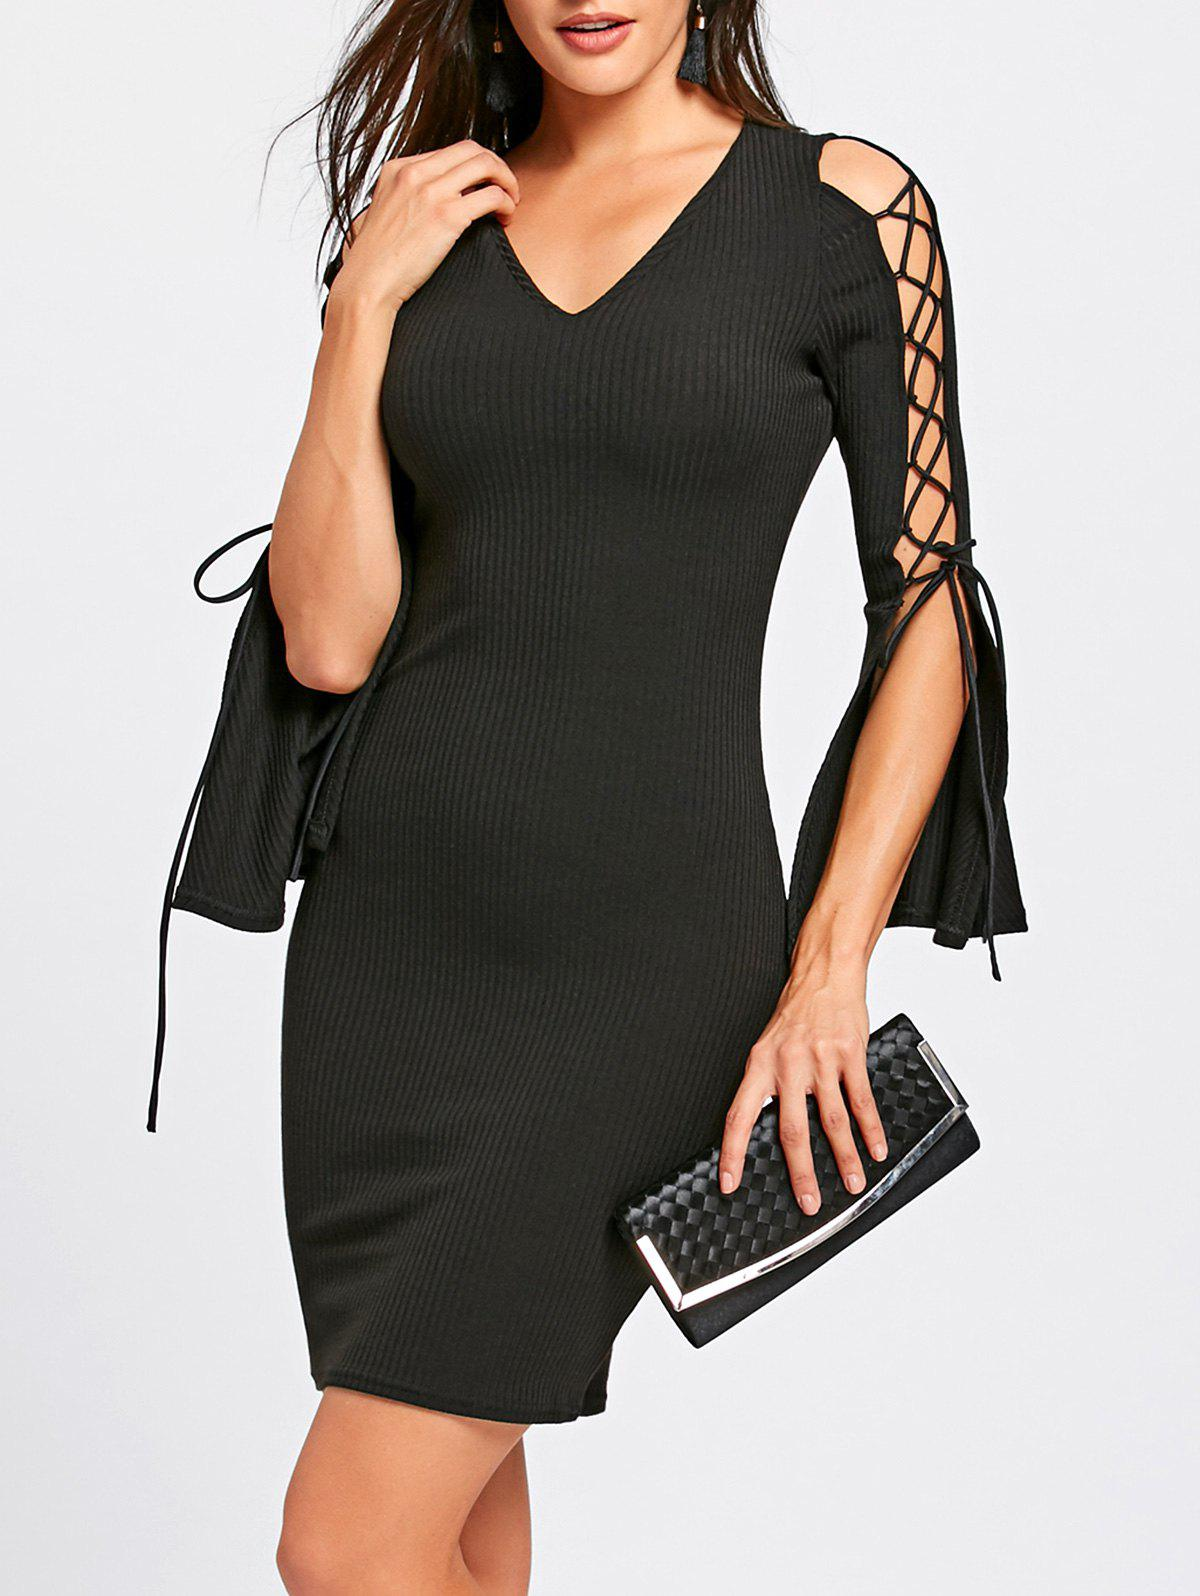 Lace Up Split Sleeve Bodycon Dress 235126802